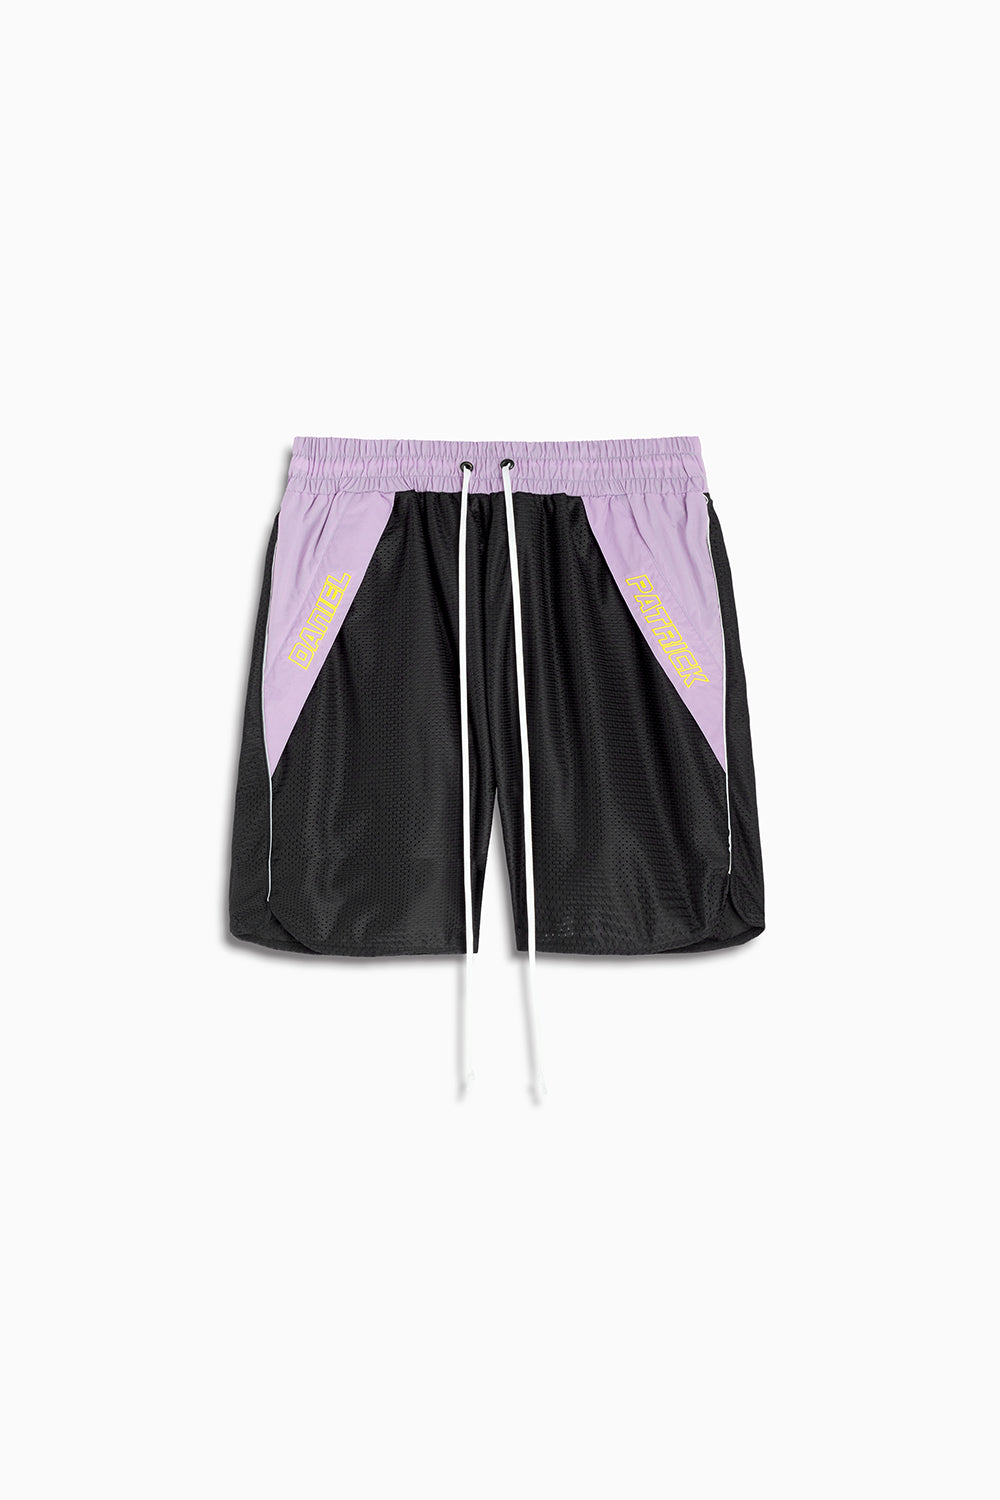 Logo Pocket Gym Short / black + 3m + purple haze